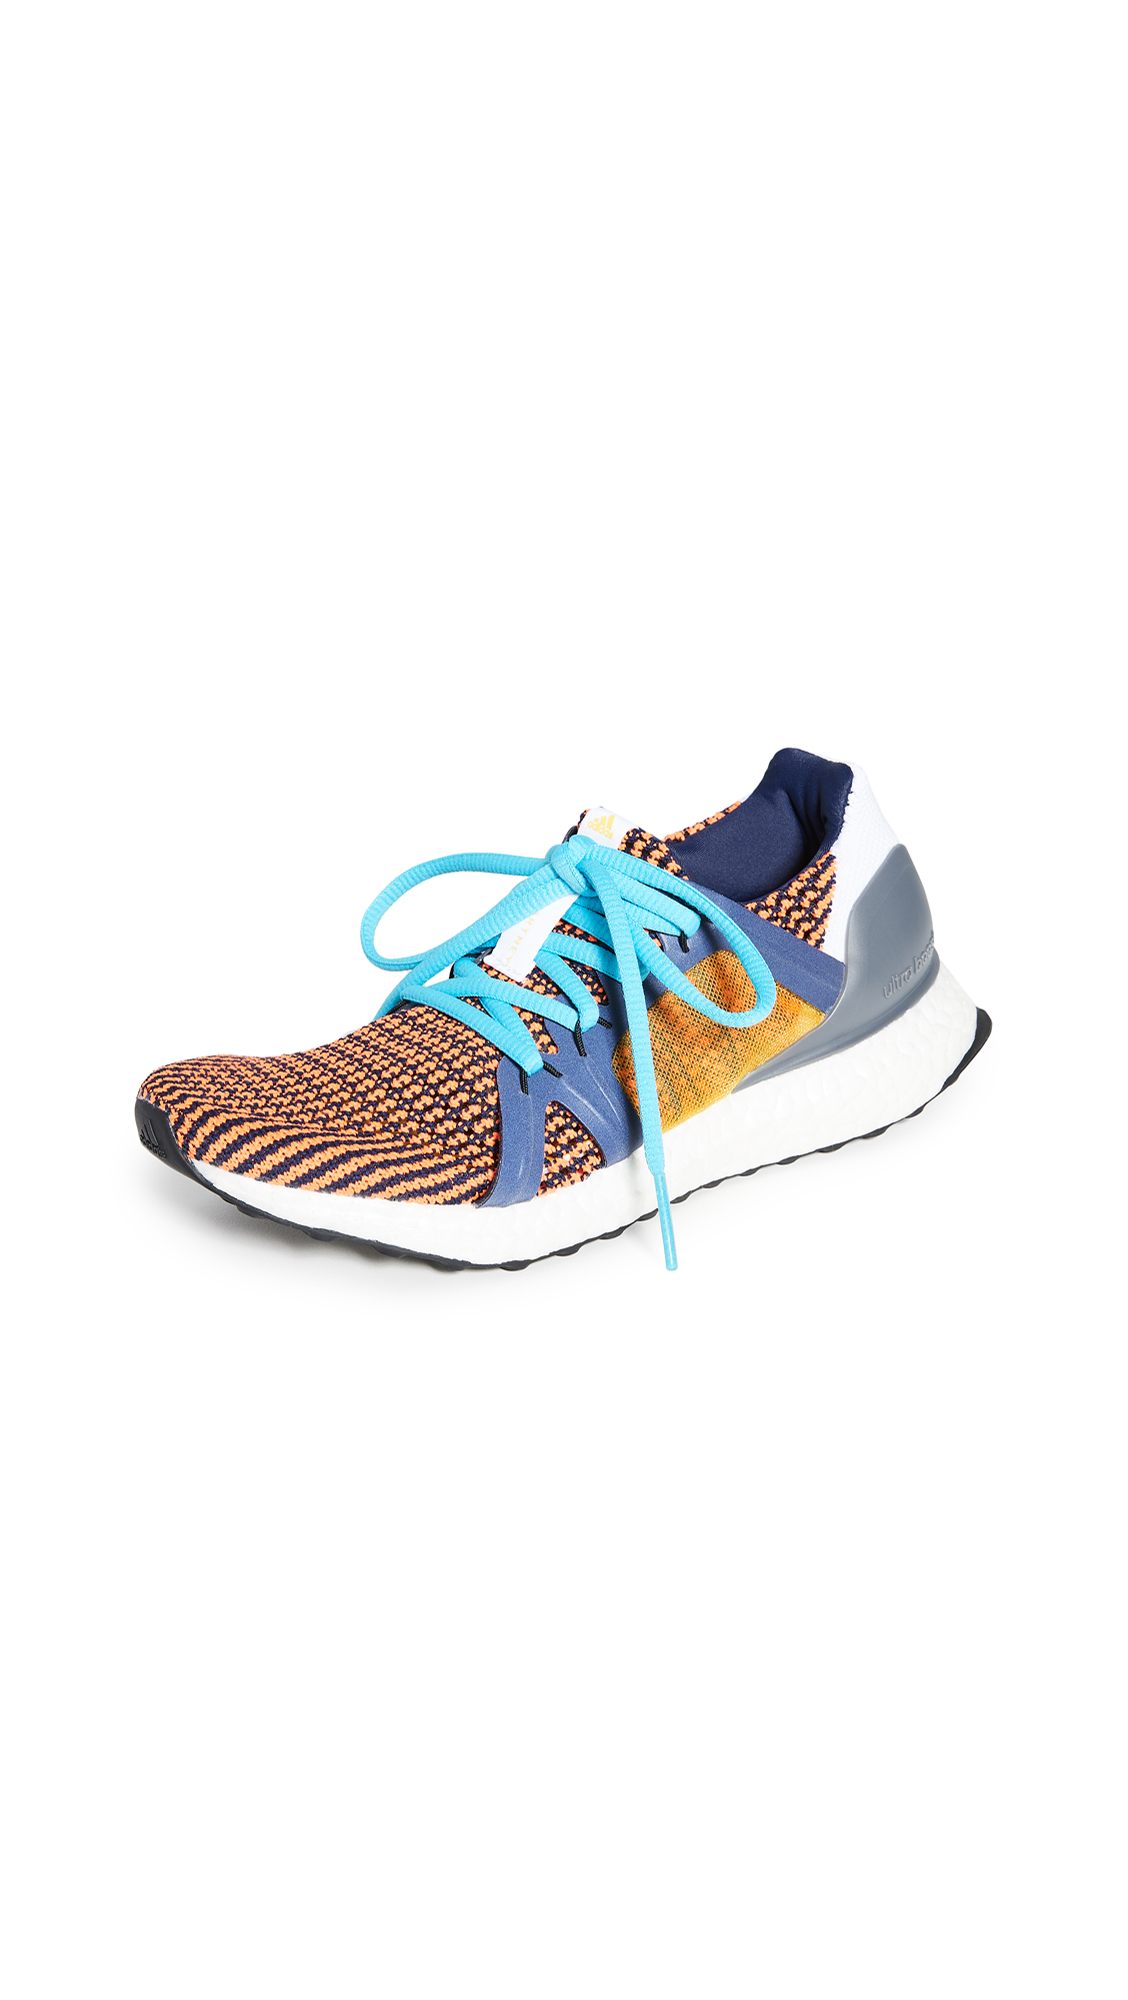 adidas by Stella McCartney Ultraboost S. Sneakers – 40% Off Sale